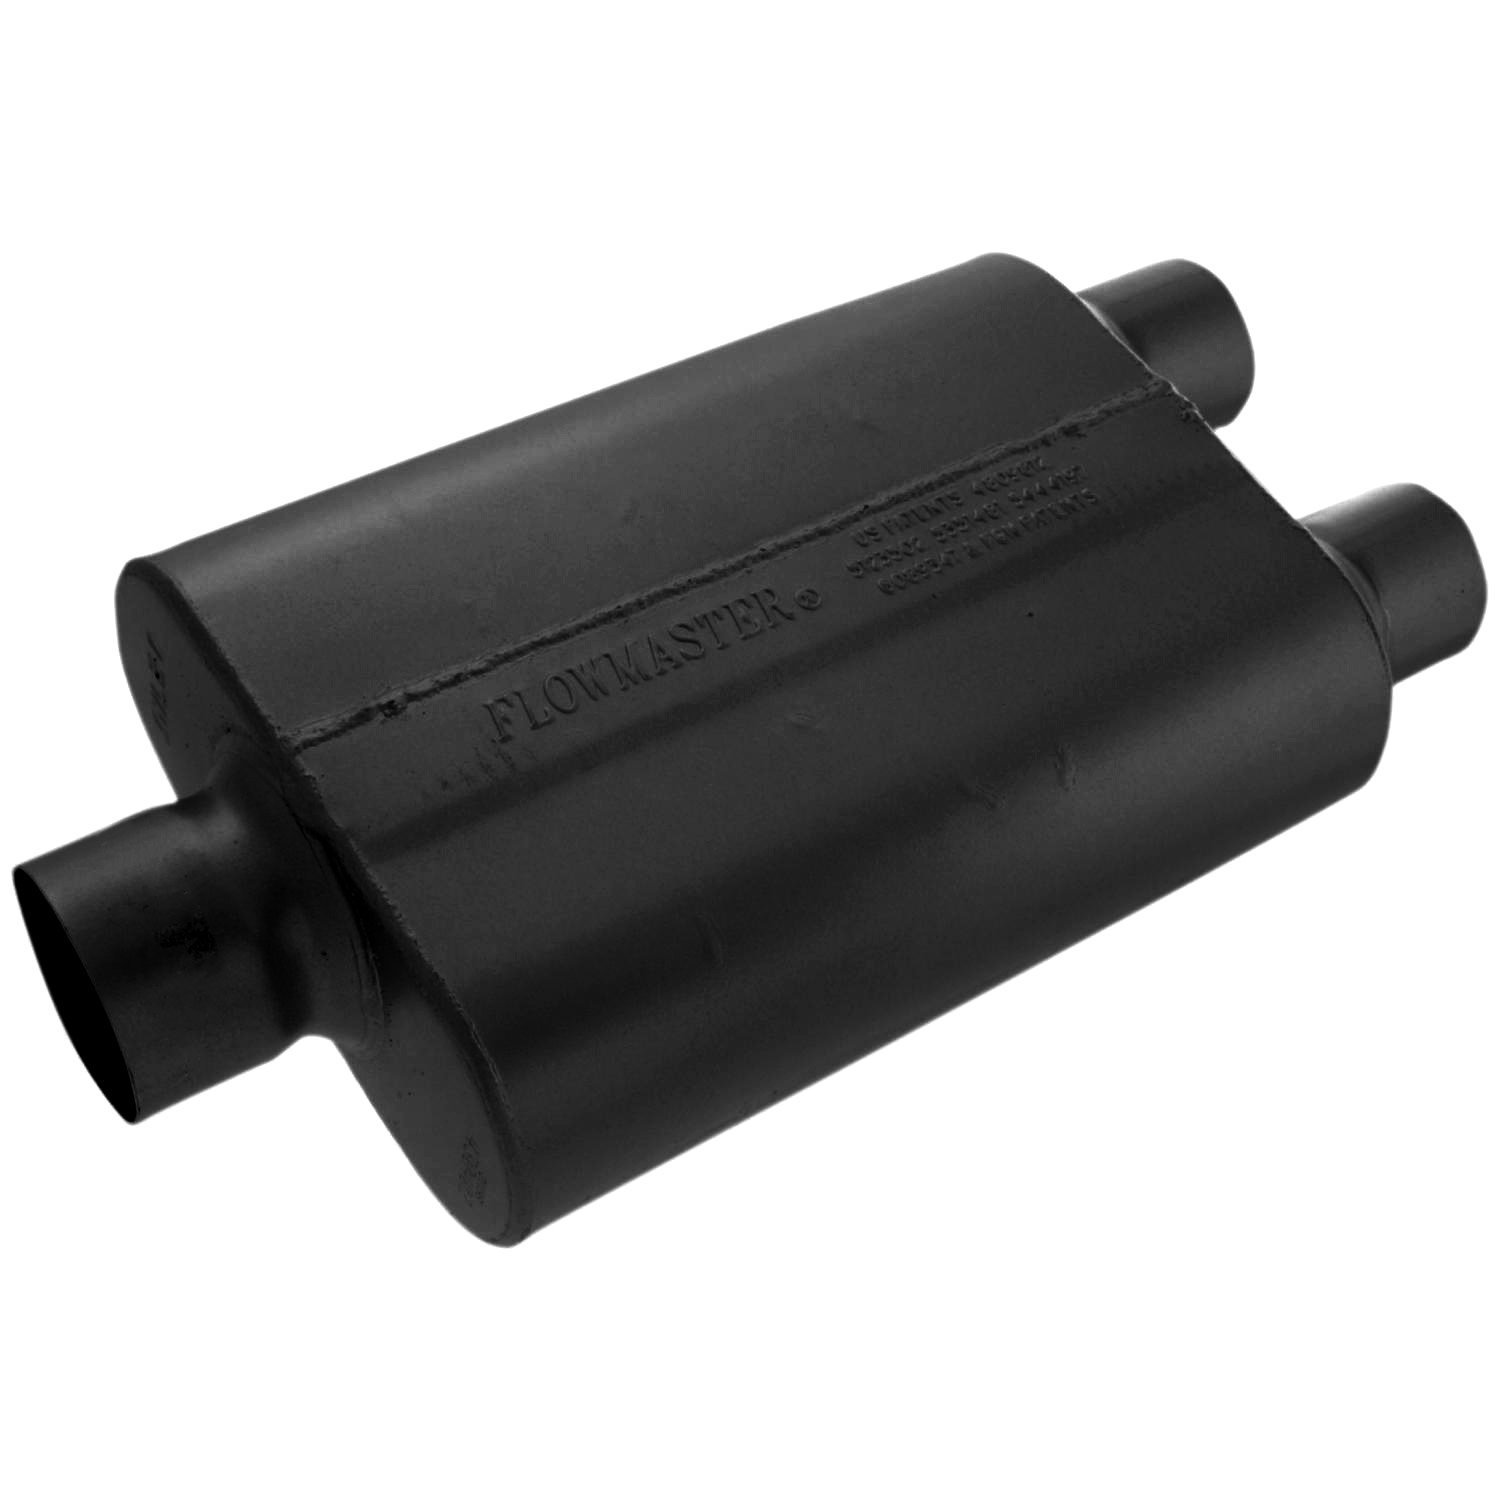 Flowmaster 430402 40 Series Muffler - 3.00 Center IN / 2.50 Dual OUT - Aggressive Sound by Flowmaster (Image #3)